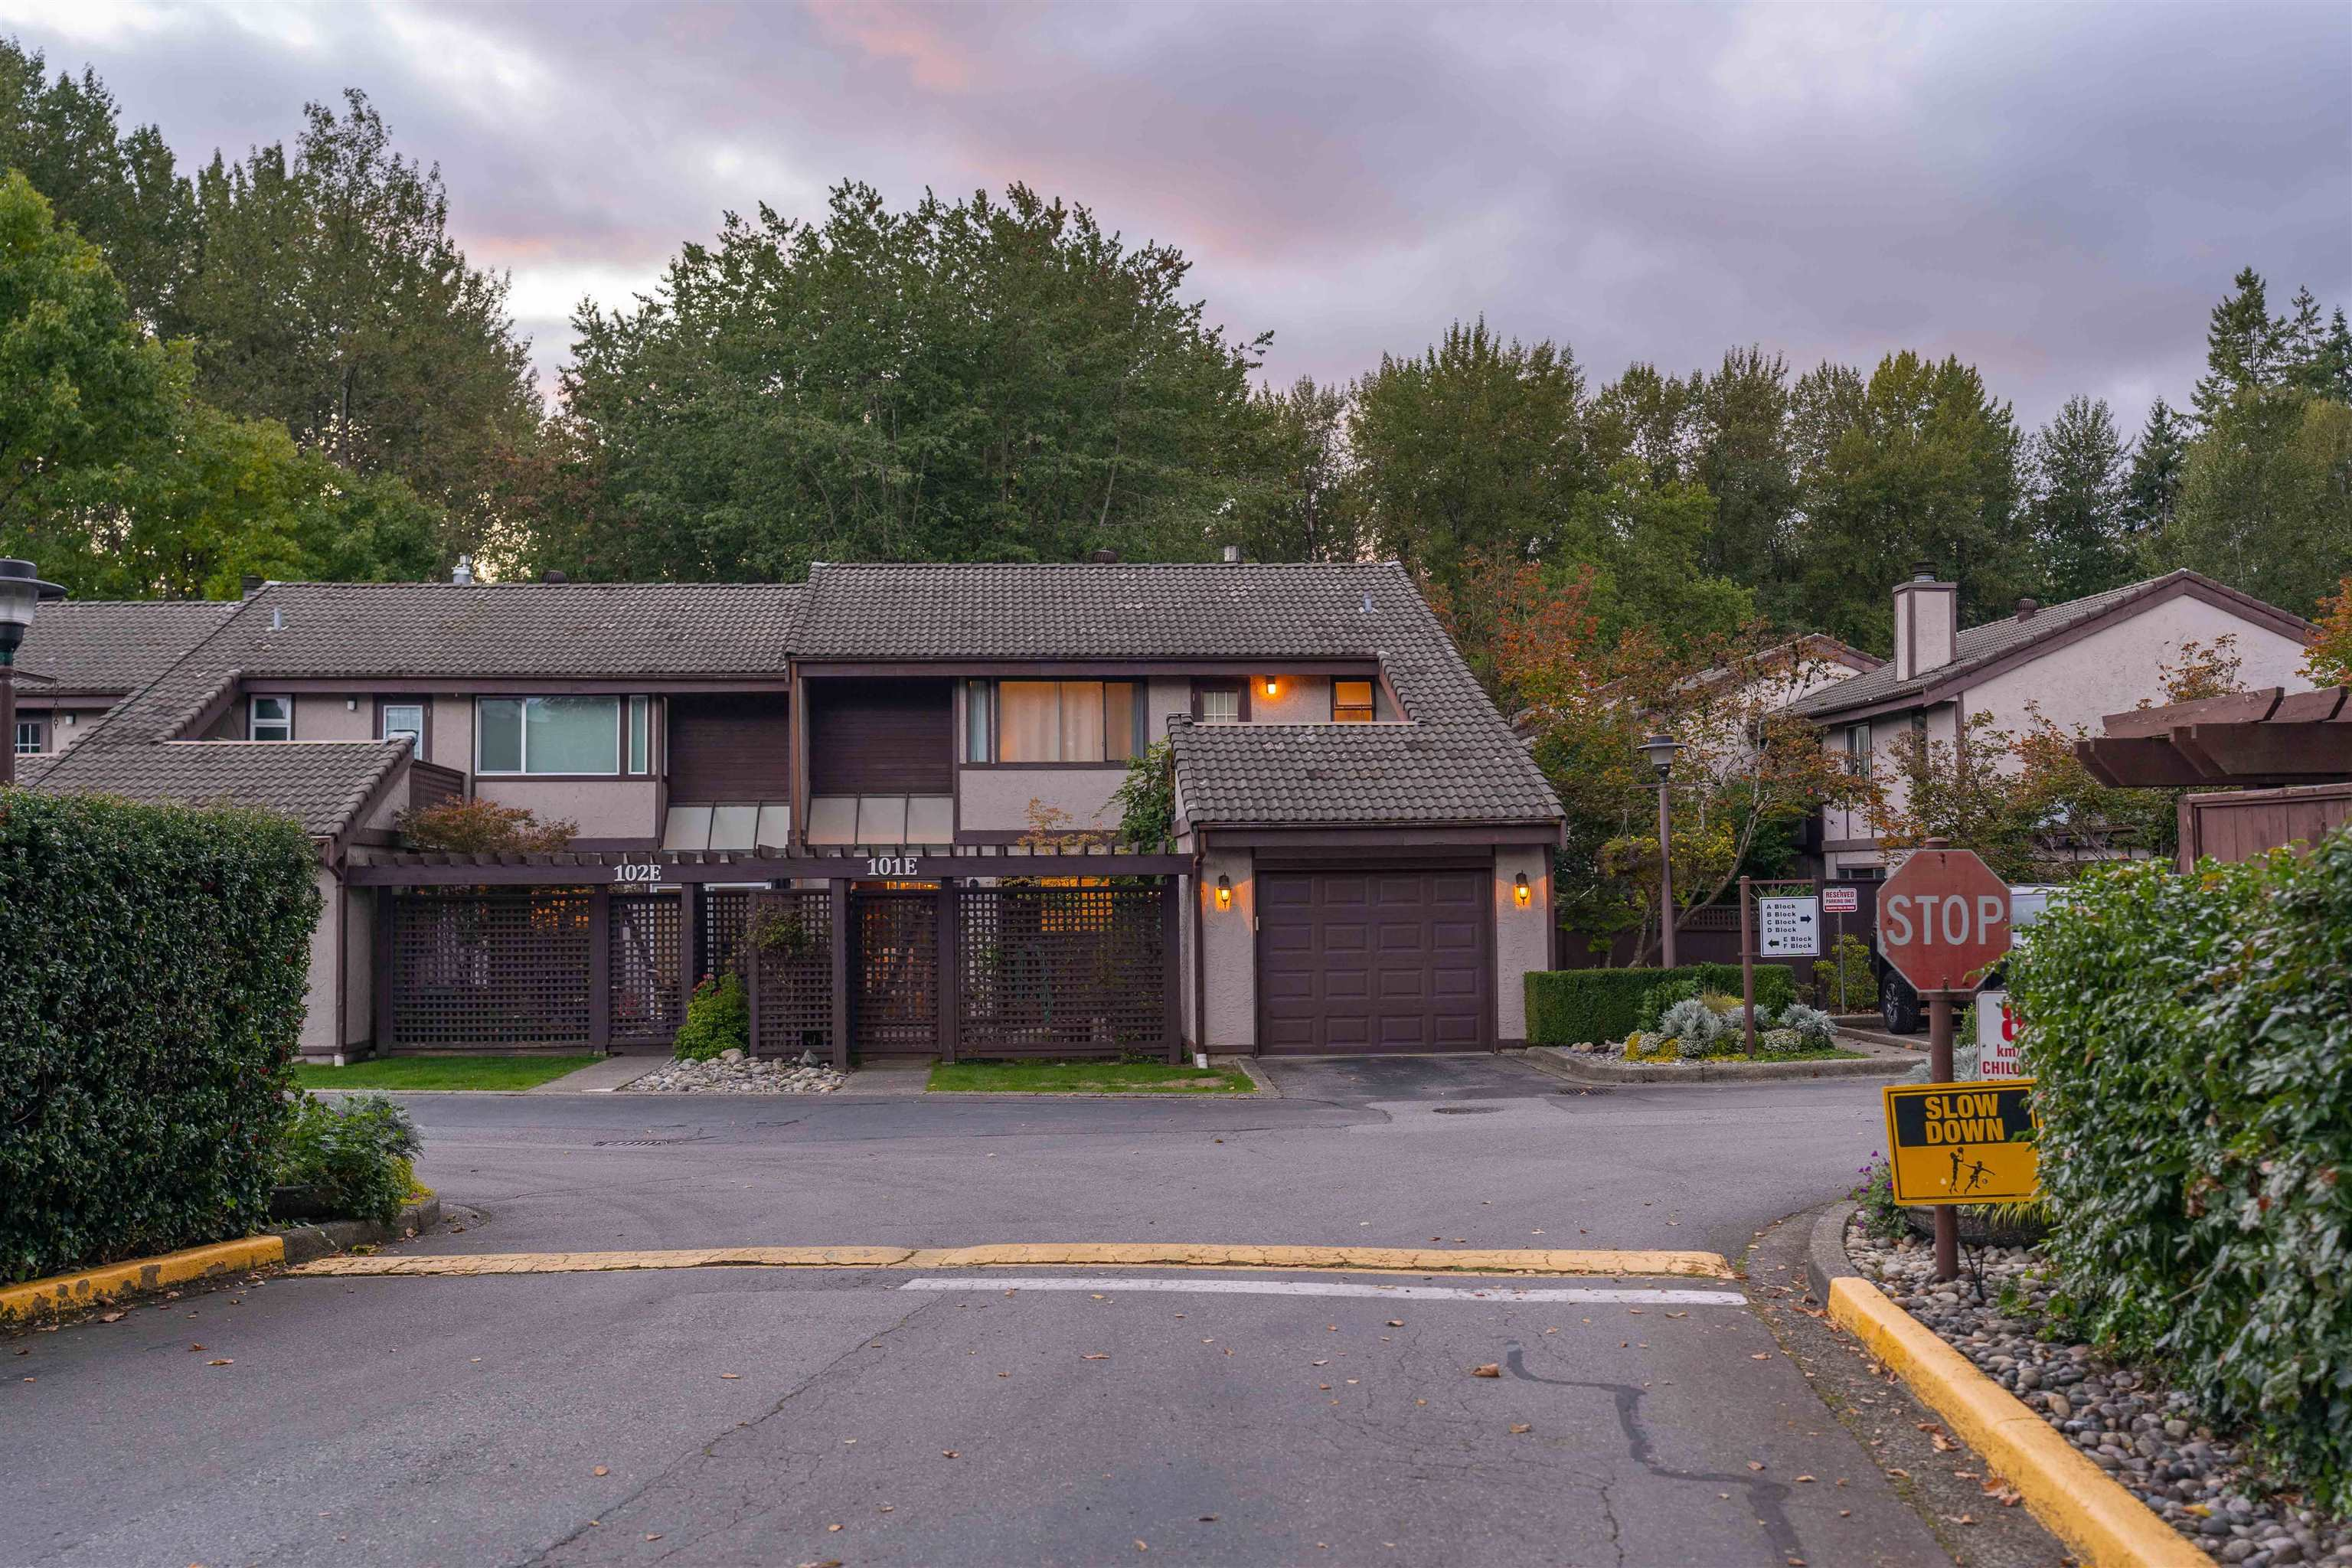 101E 3655 SHAUGHNESSY STREET - Glenwood PQ Townhouse for sale, 3 Bedrooms (R2620729) - #1